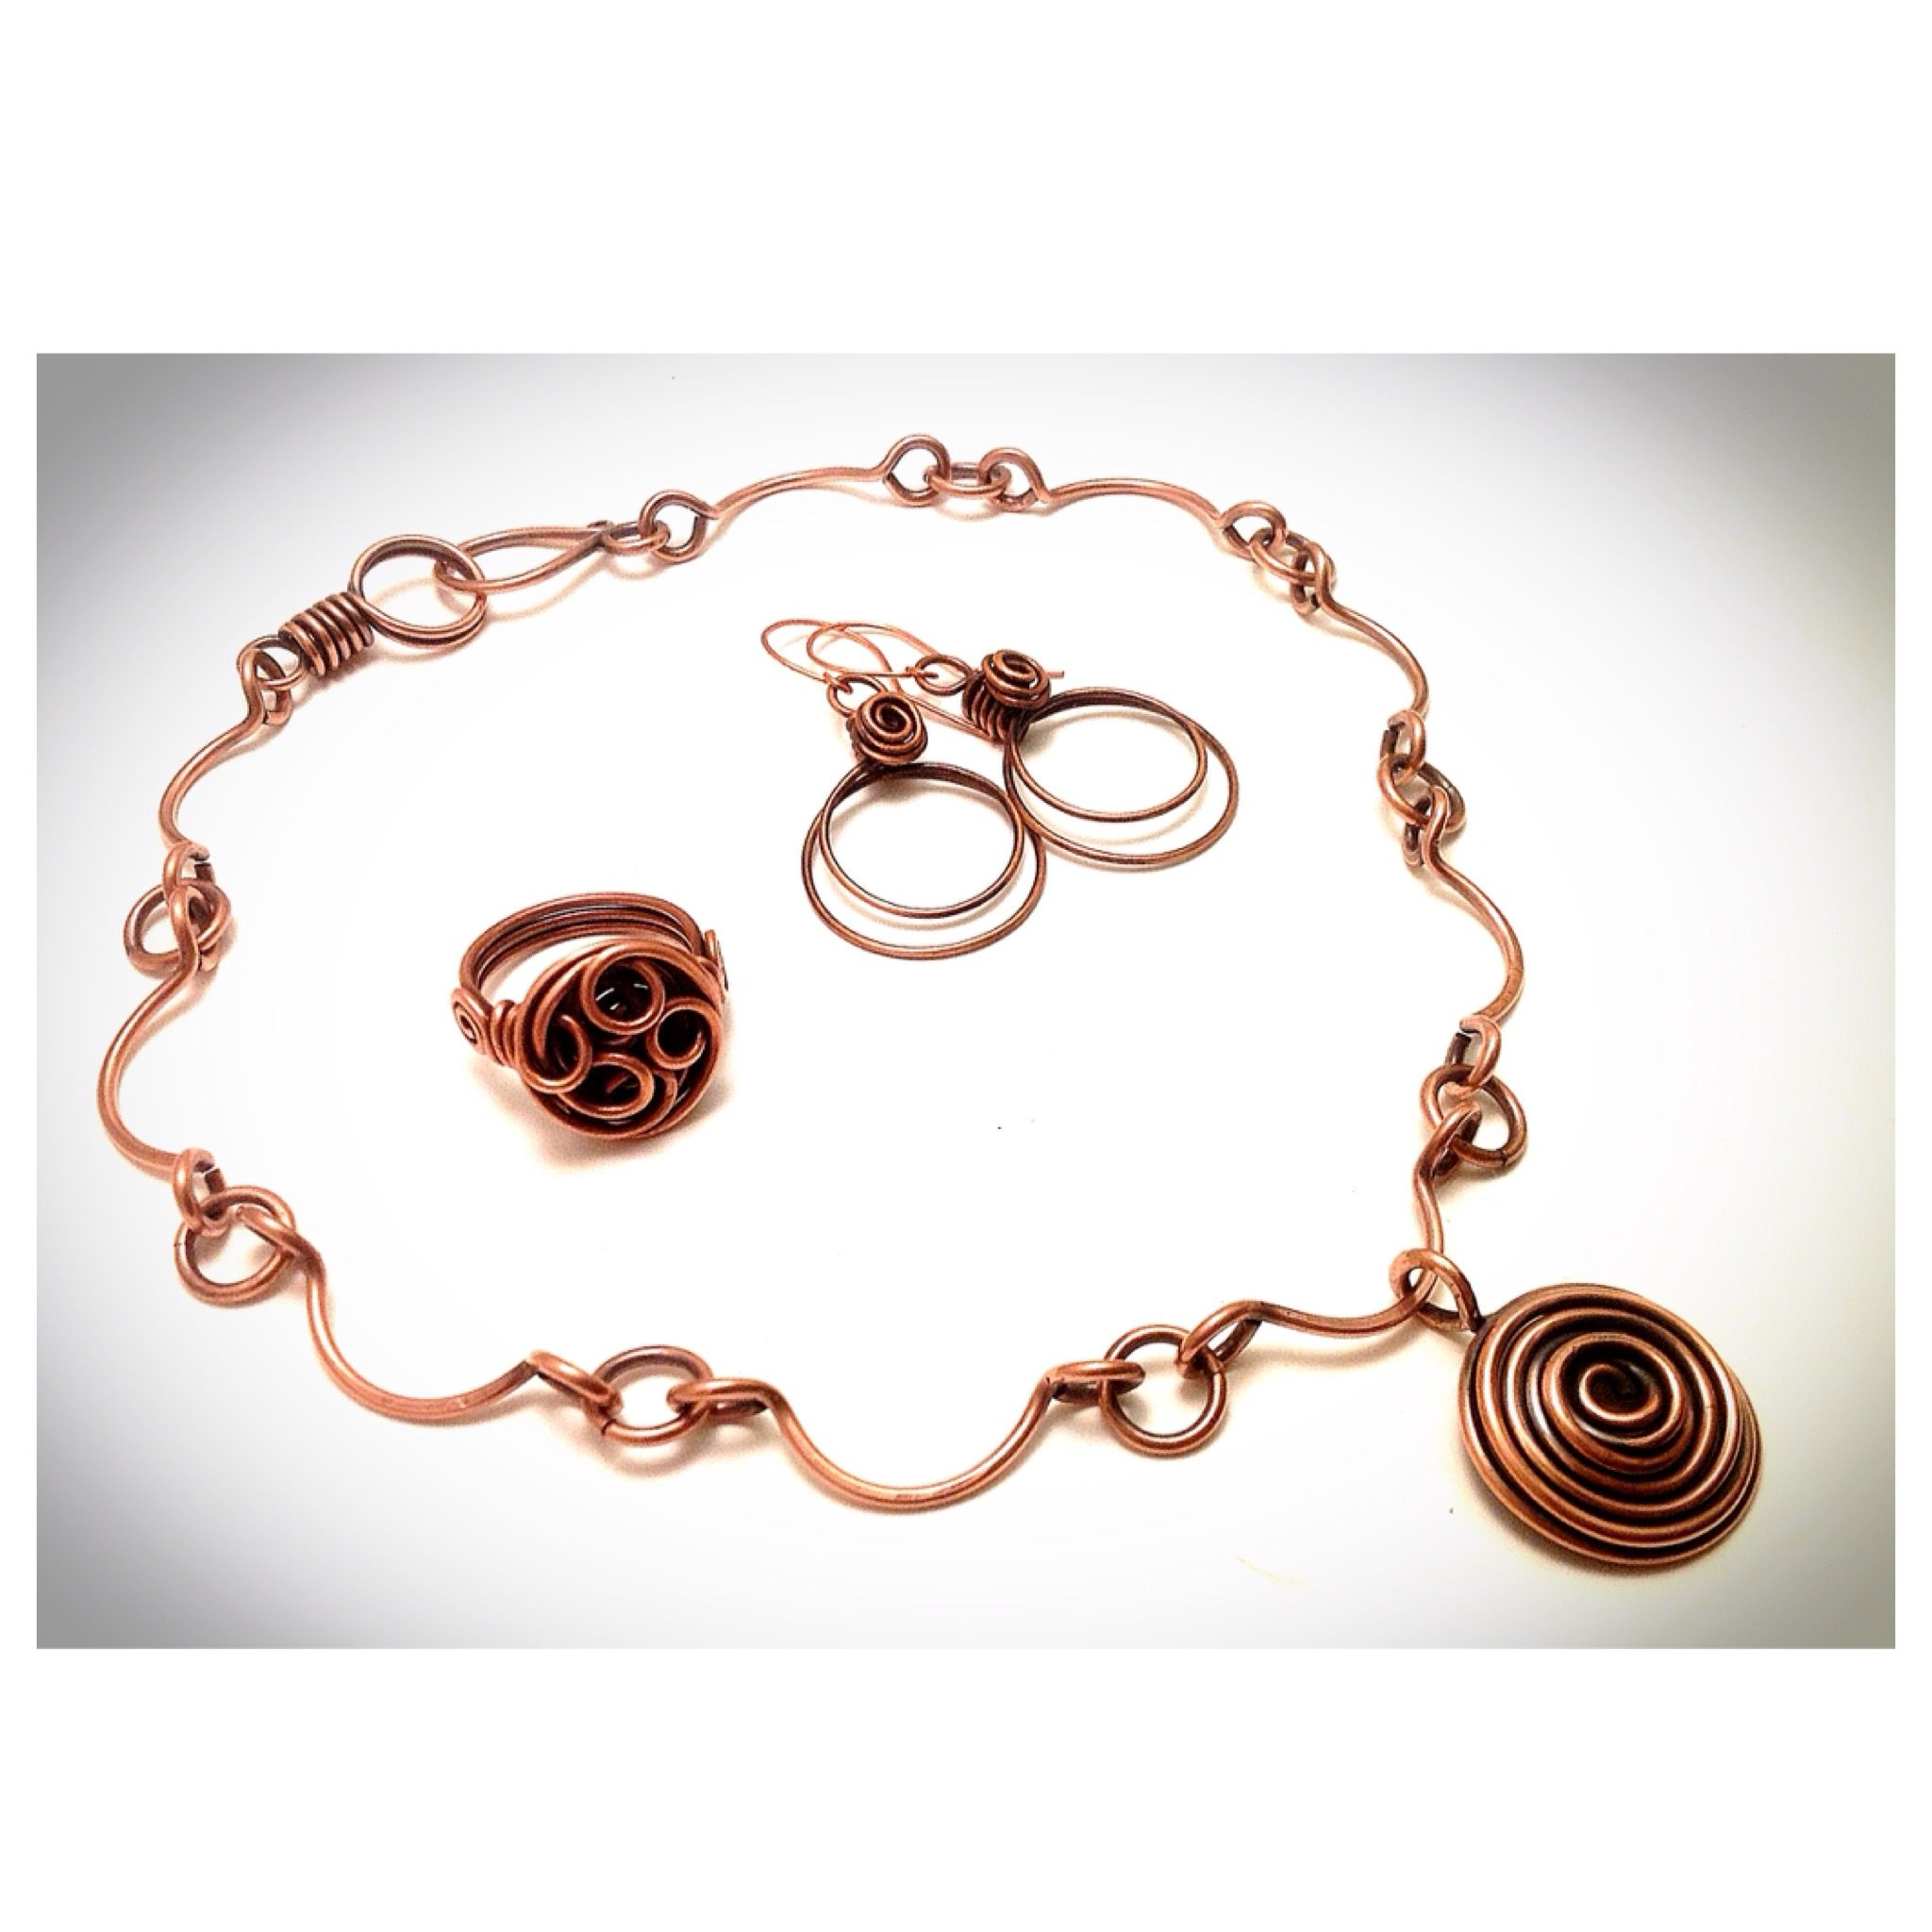 Pin by JCL Wire Jewelry on JCL Wire Jewelry | Pinterest